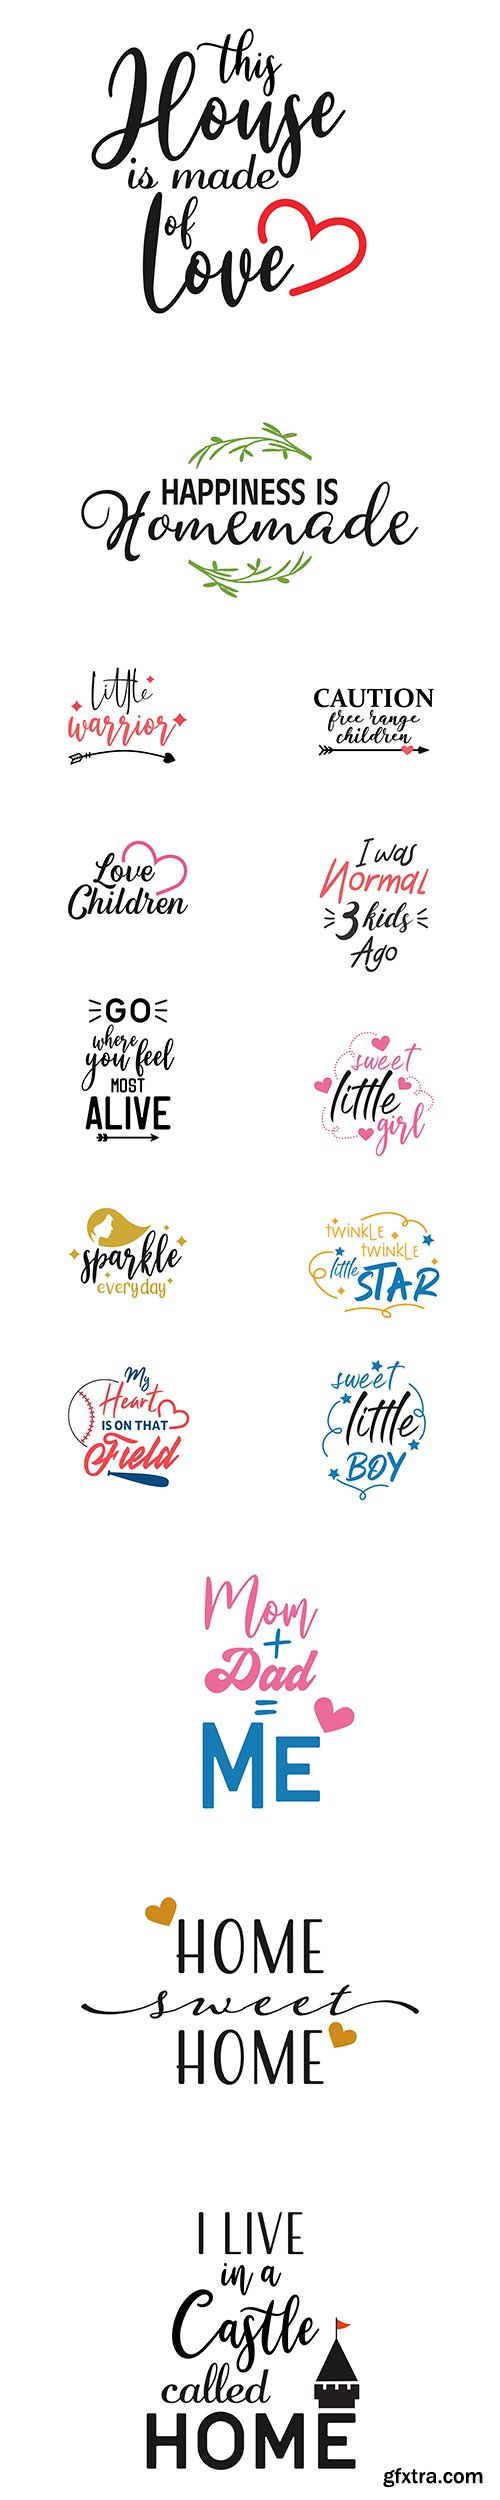 Home, Child and other Quote Lettering Typography Vector Set